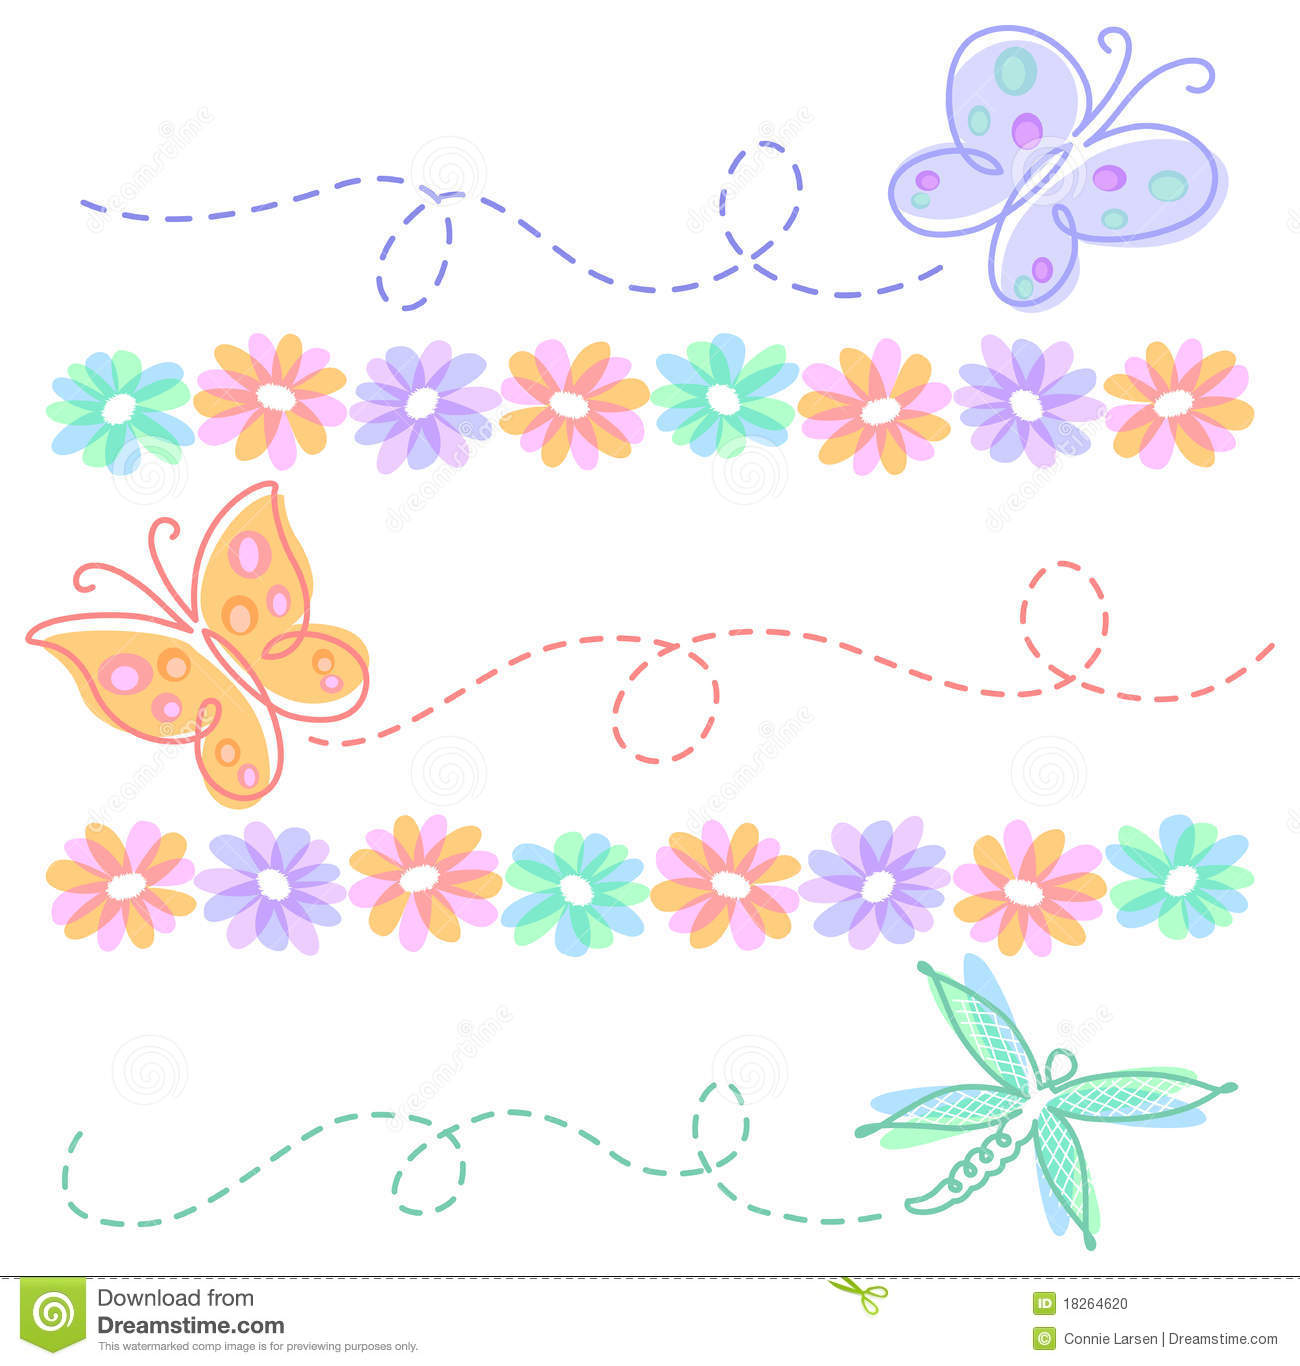 clipart flowers and butterflies-clipart flowers and butterflies-12